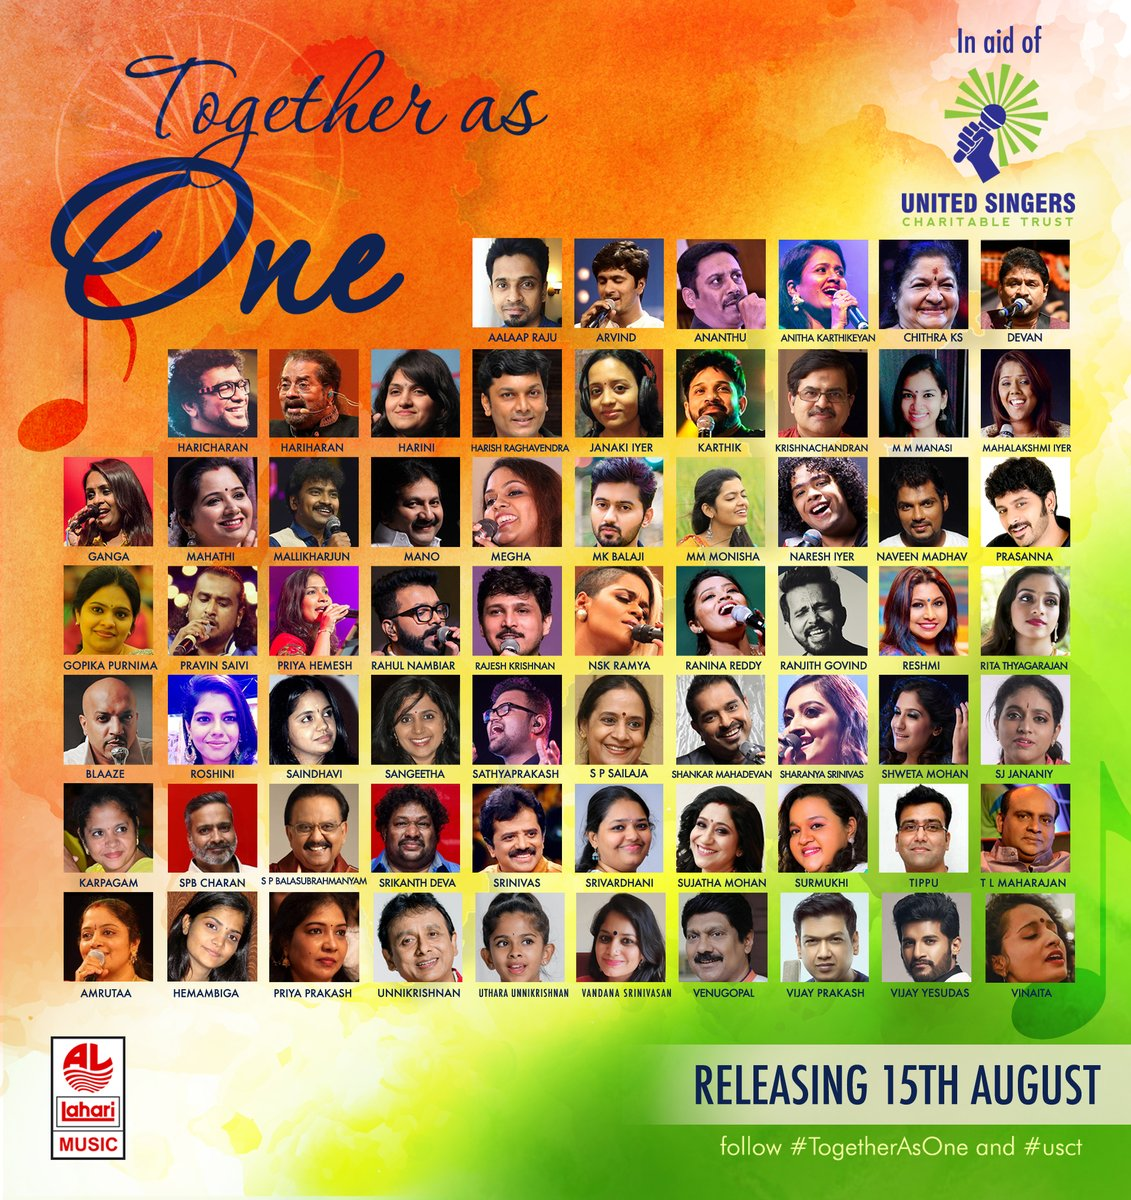 #TogetherAsOne - 65 singers from South India present a reprise of the @arrahman classic! RELEASE DATE: 15th AUG 2020 TogetherAsOne song marks the start of @usctoffical (United Singers Charitable Trust), an initiative by Singers to support South Indian musician's community! #USCT